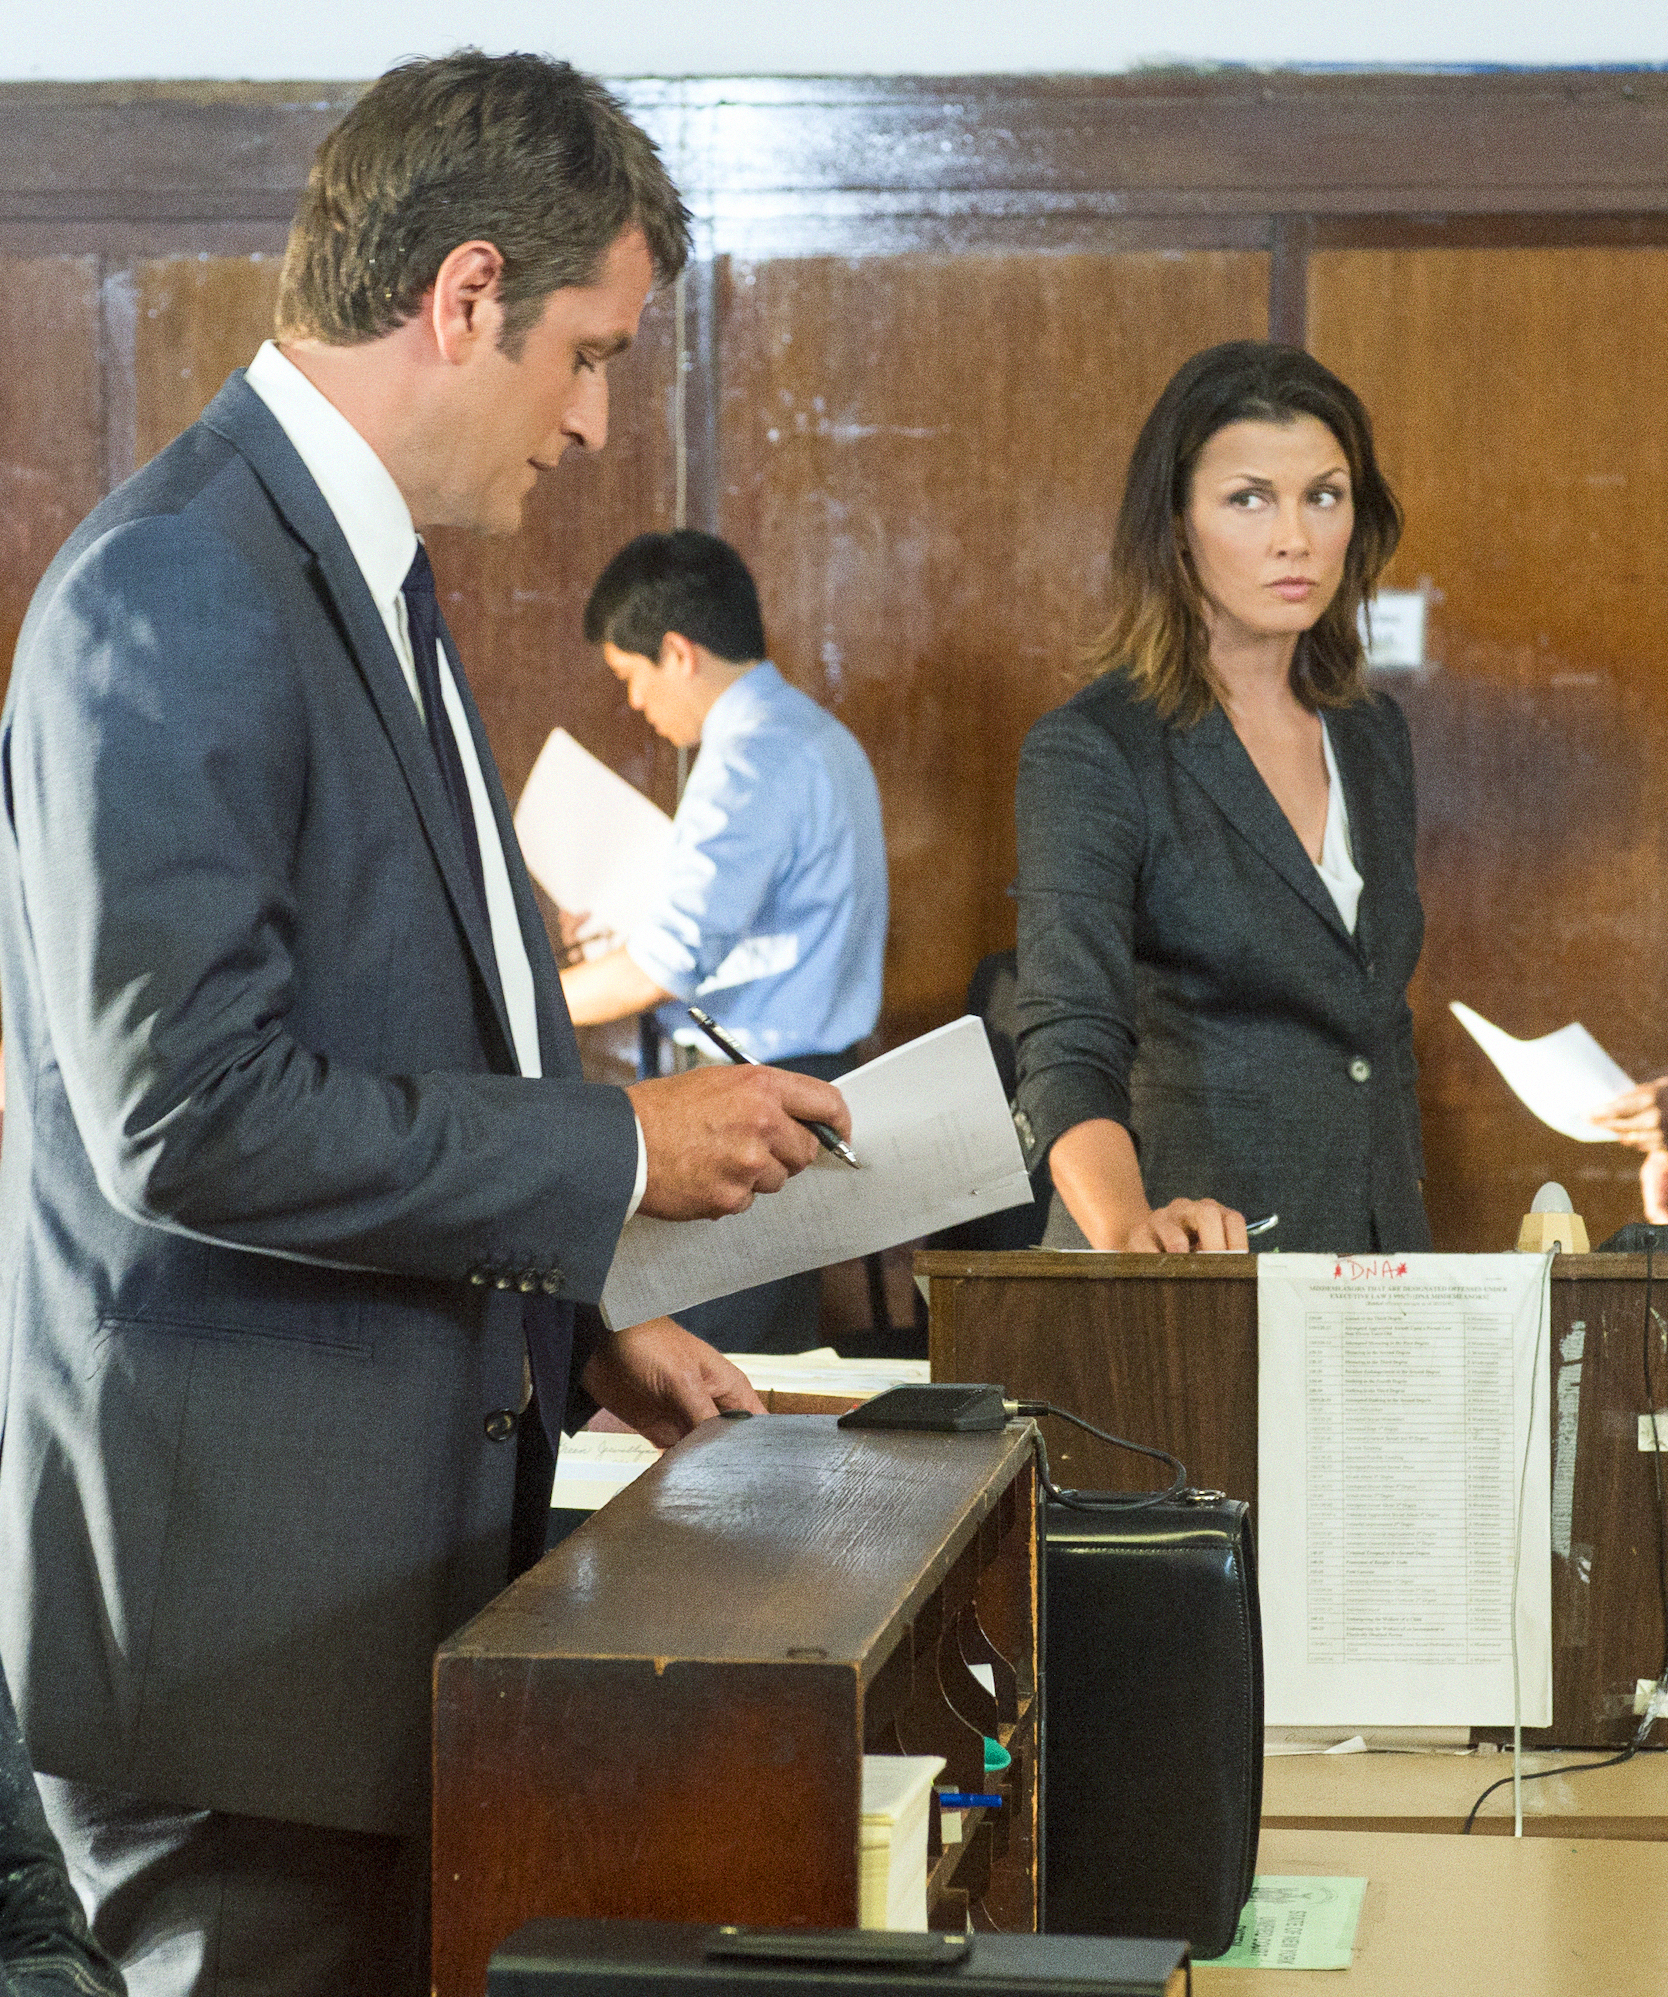 Erin and Her Ex-Husband in Court